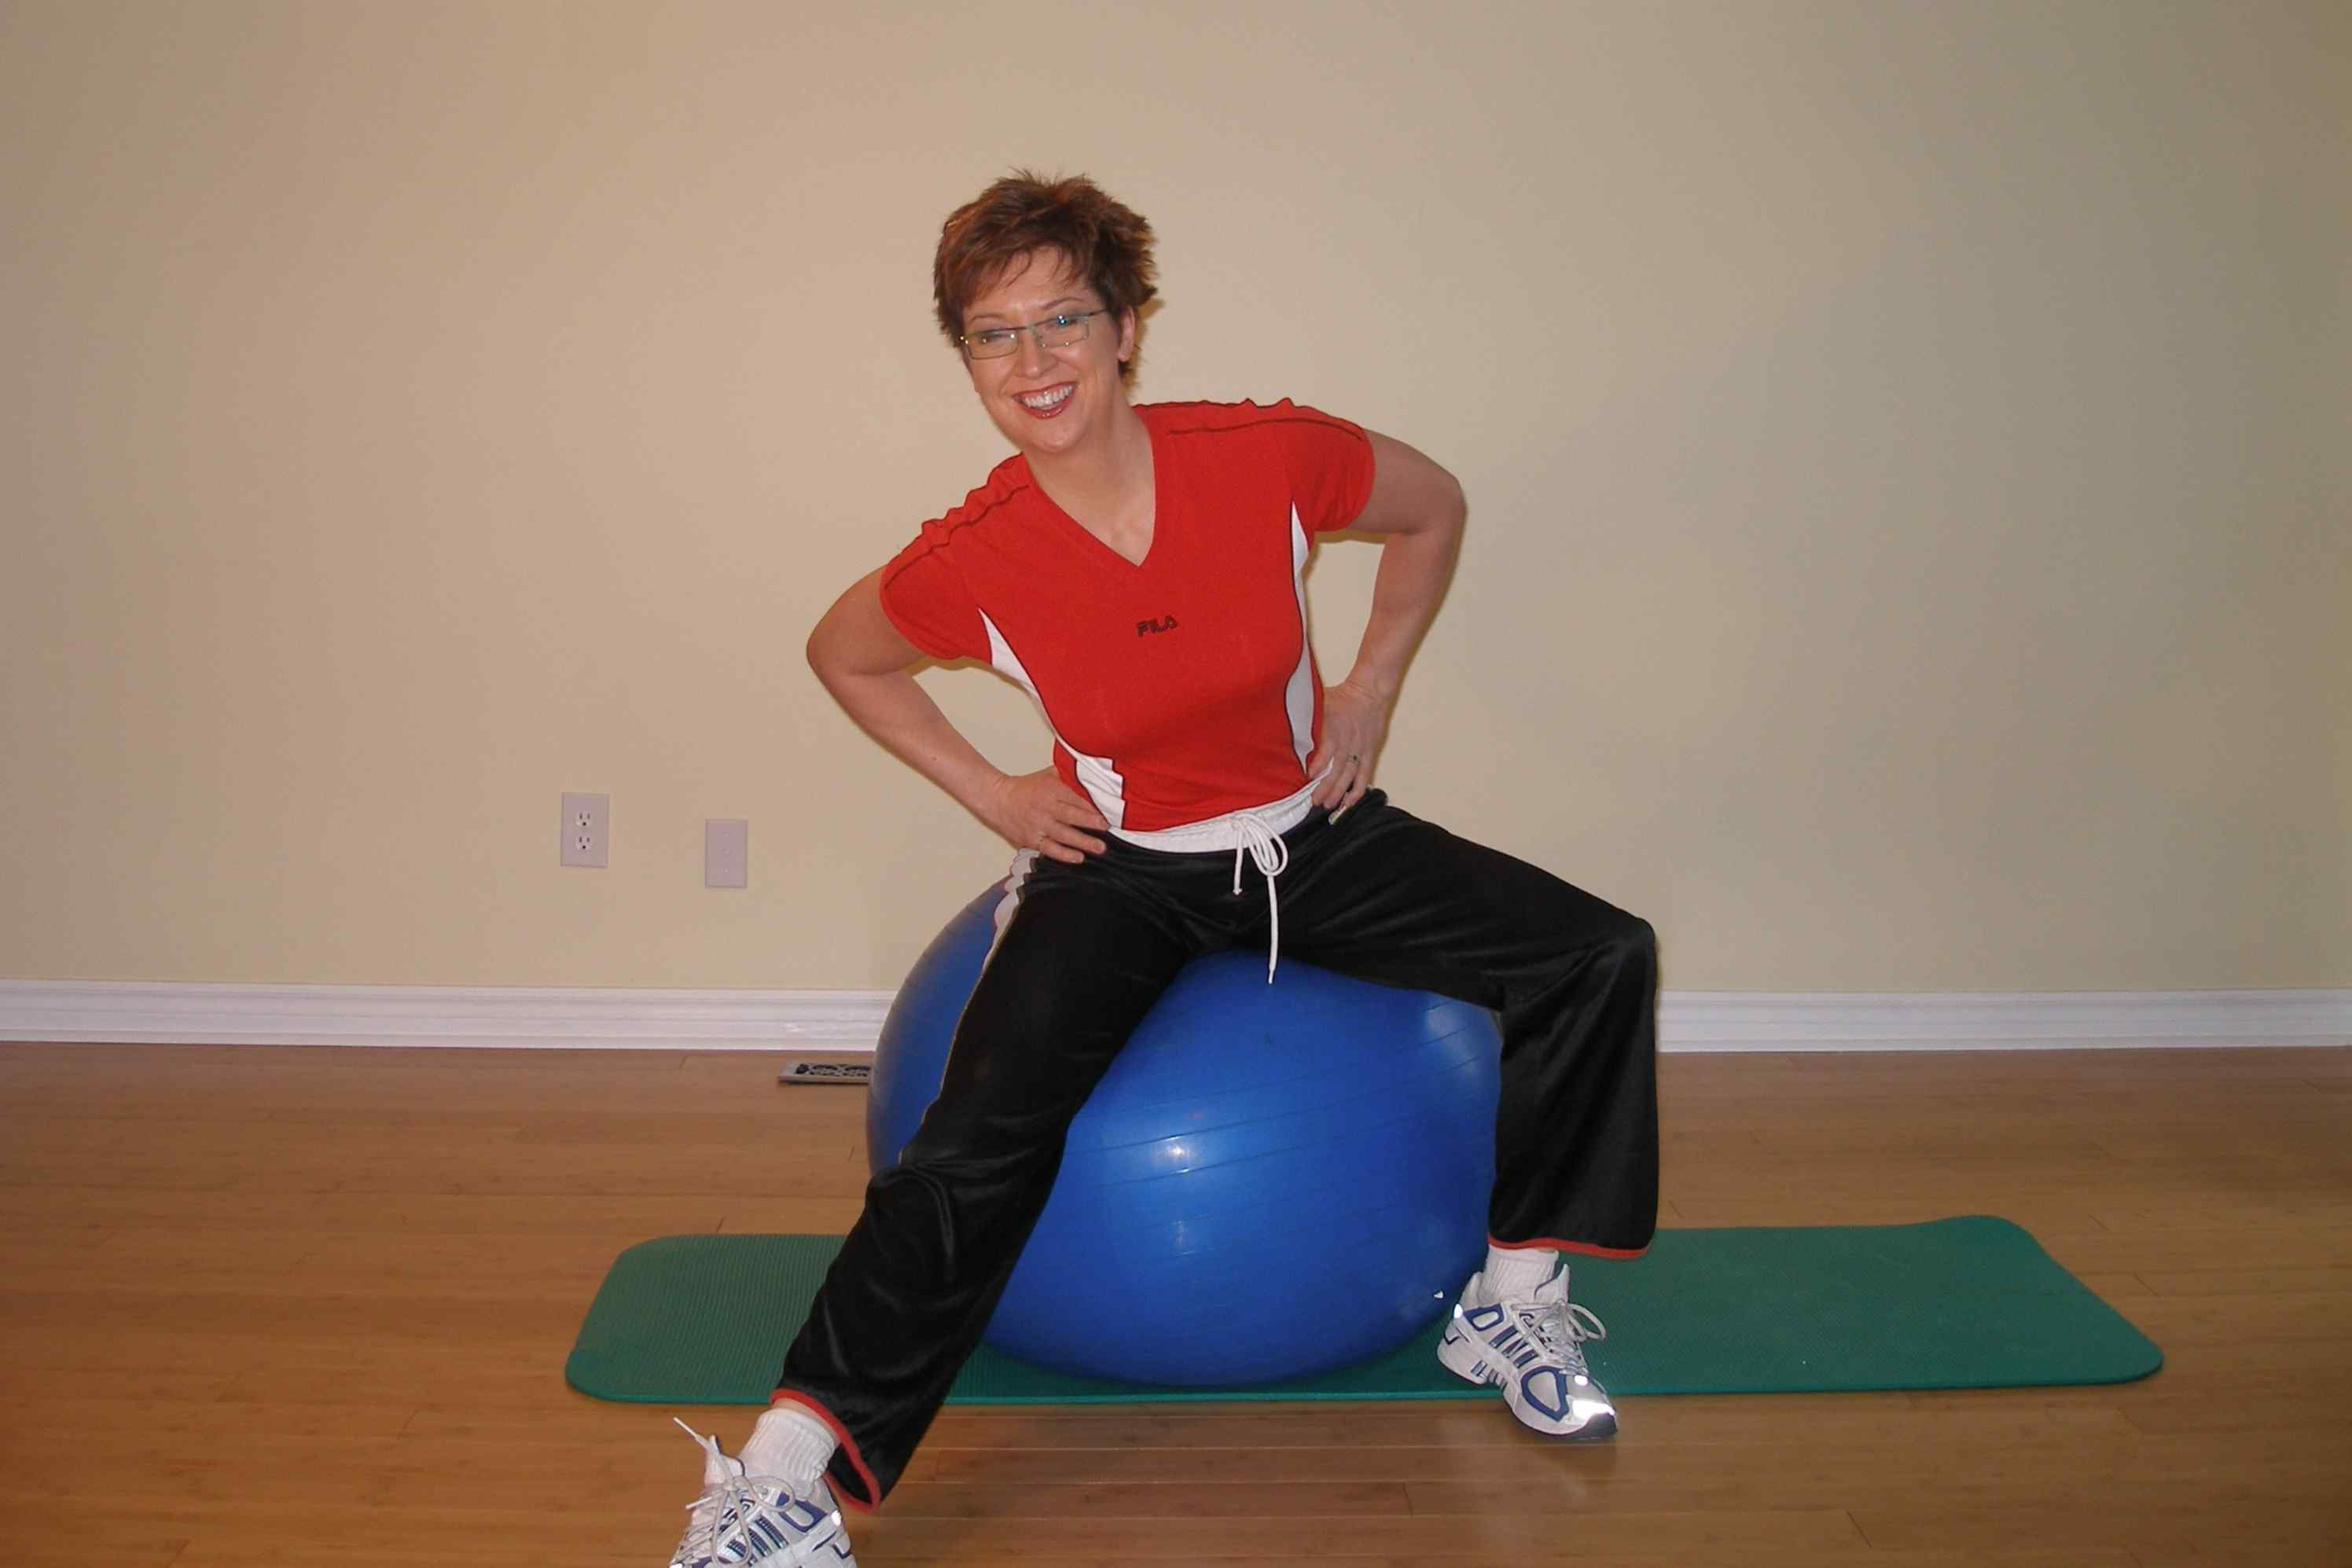 hamstring stretch with the exercise ball